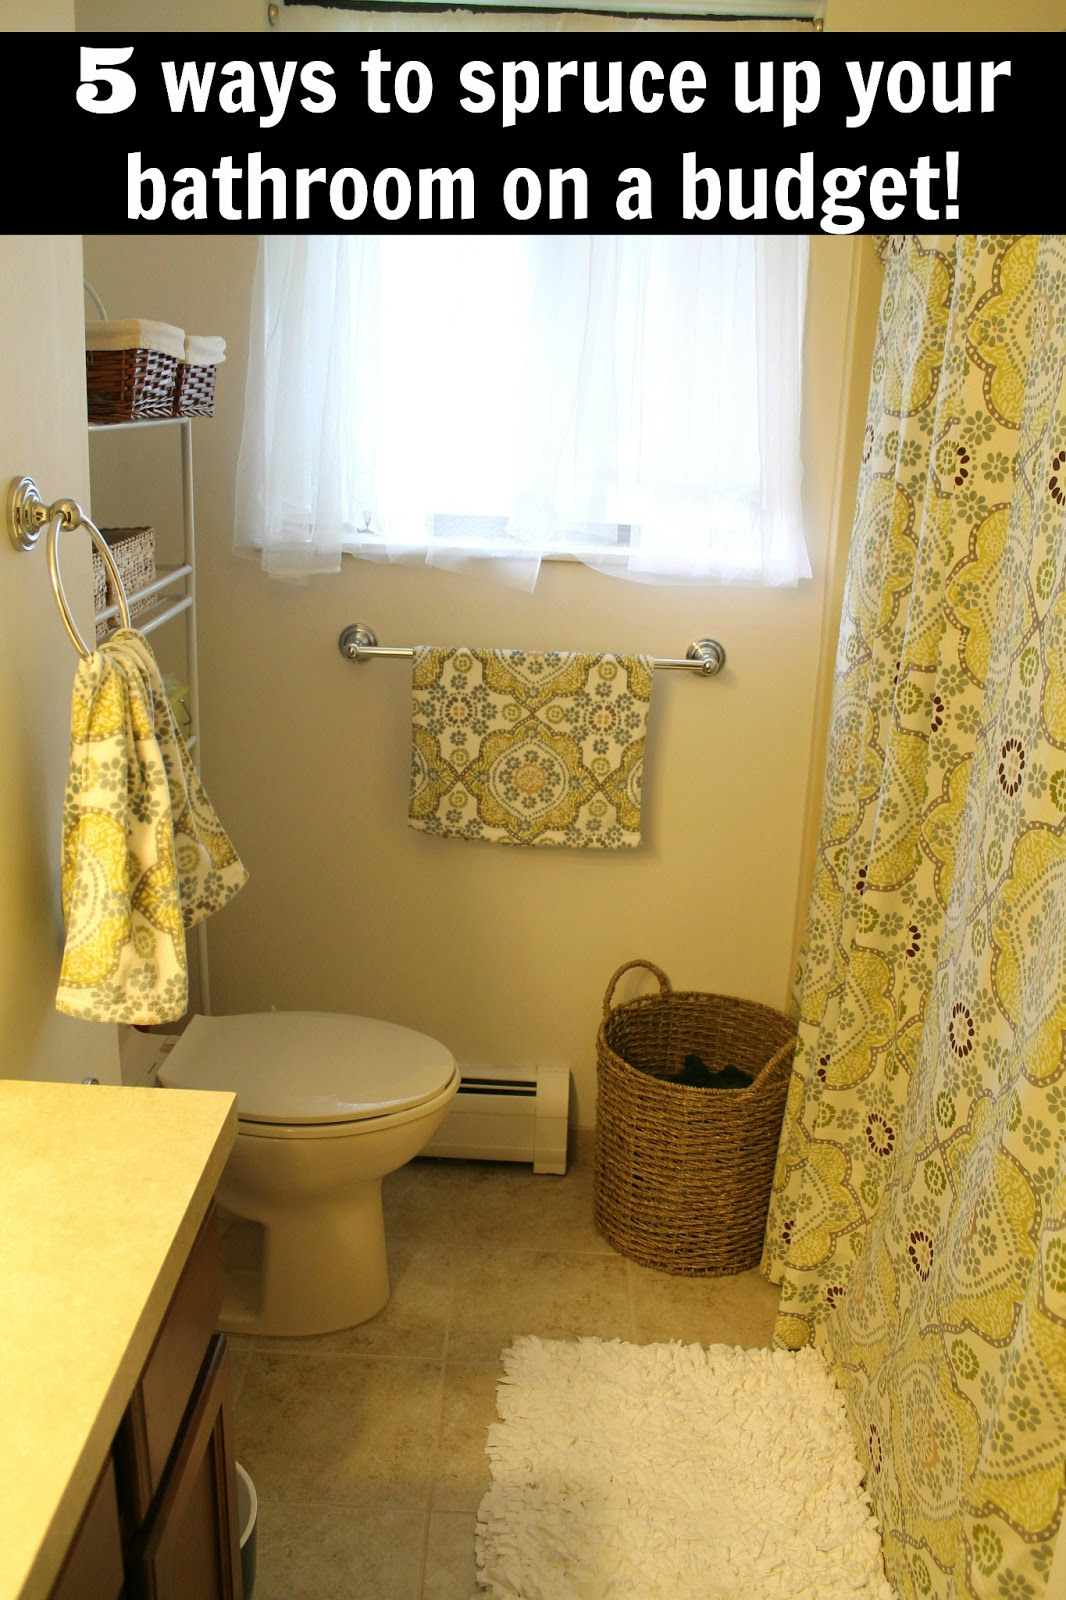 5 Ways to Spruce up Your Bathroom on a Budget  BargainBriana